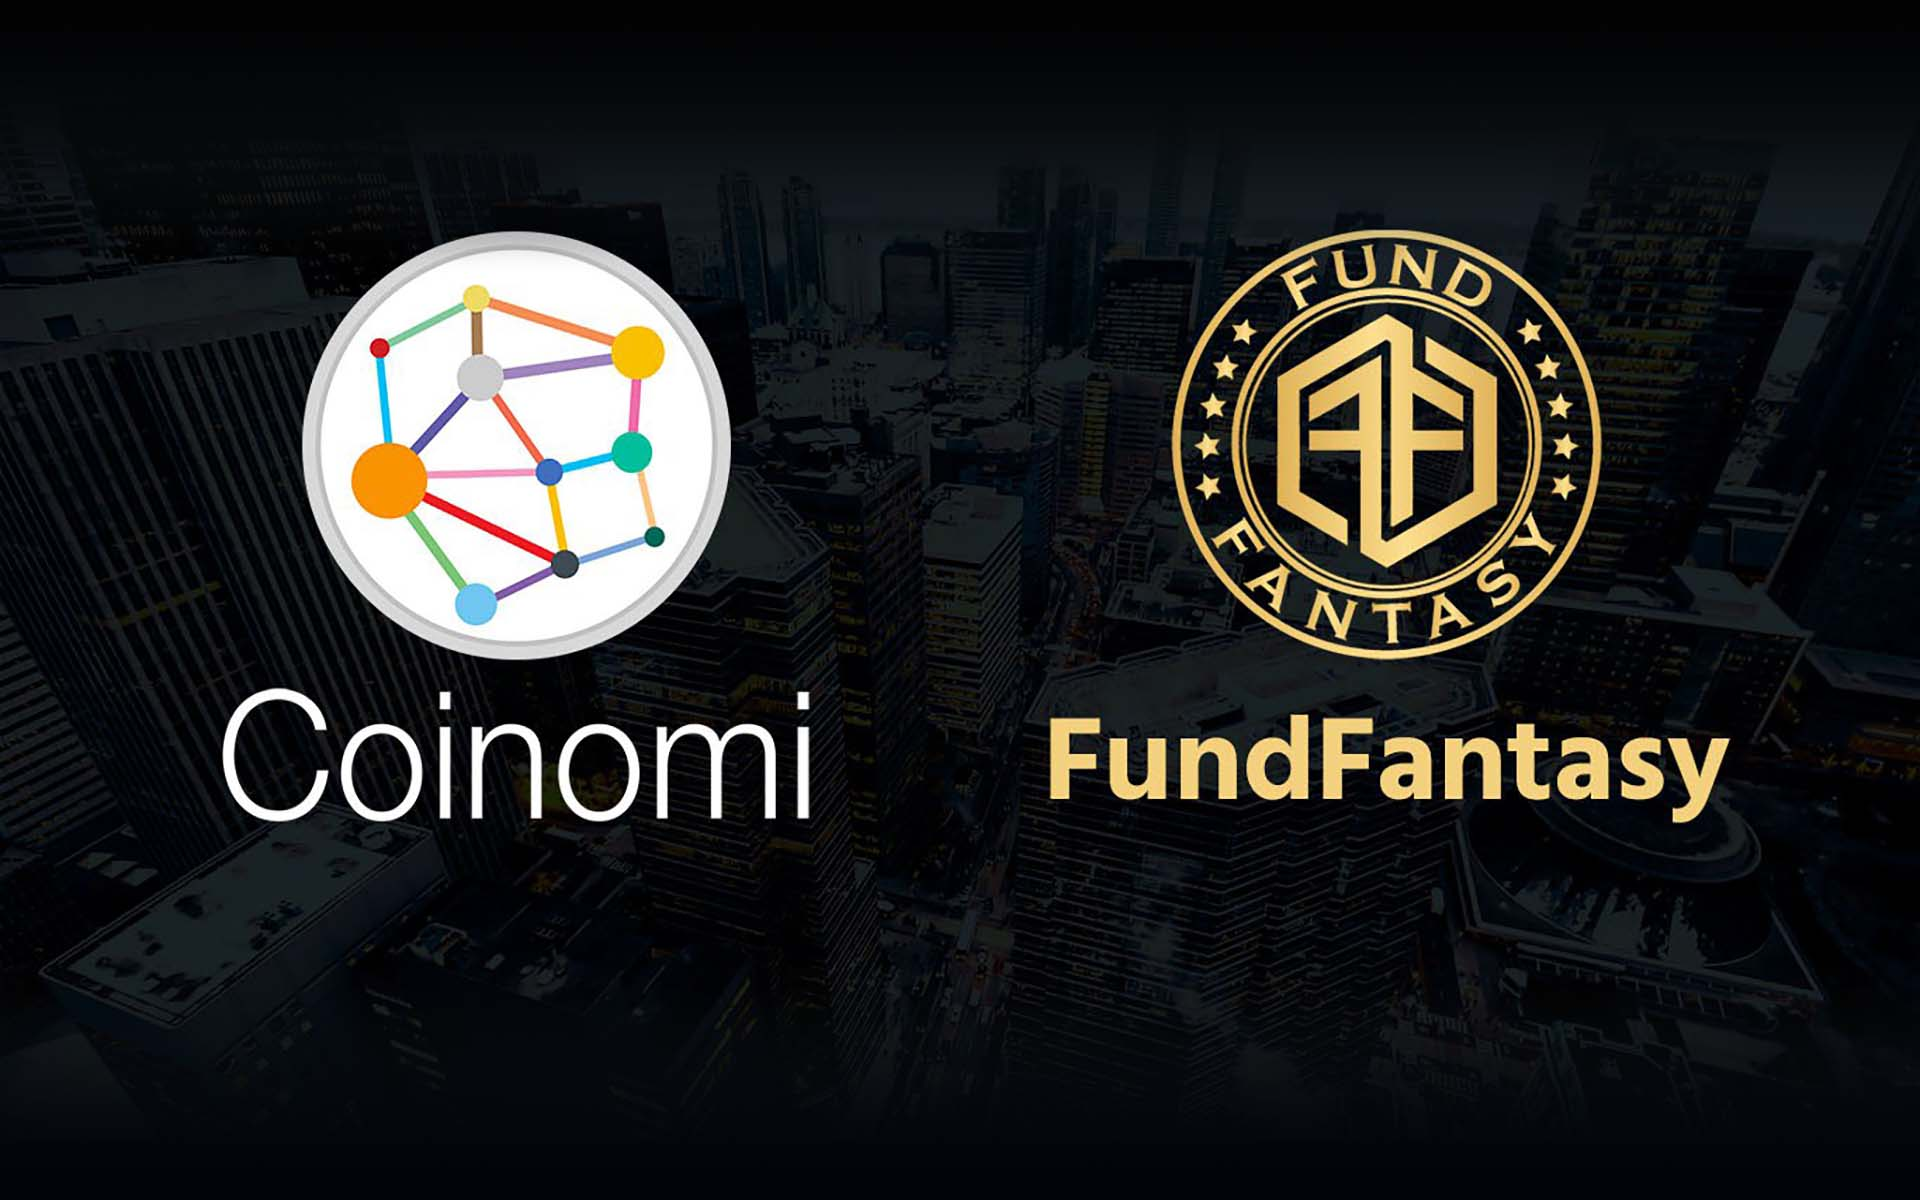 FundFantasy And Coinomi Announce Partnership